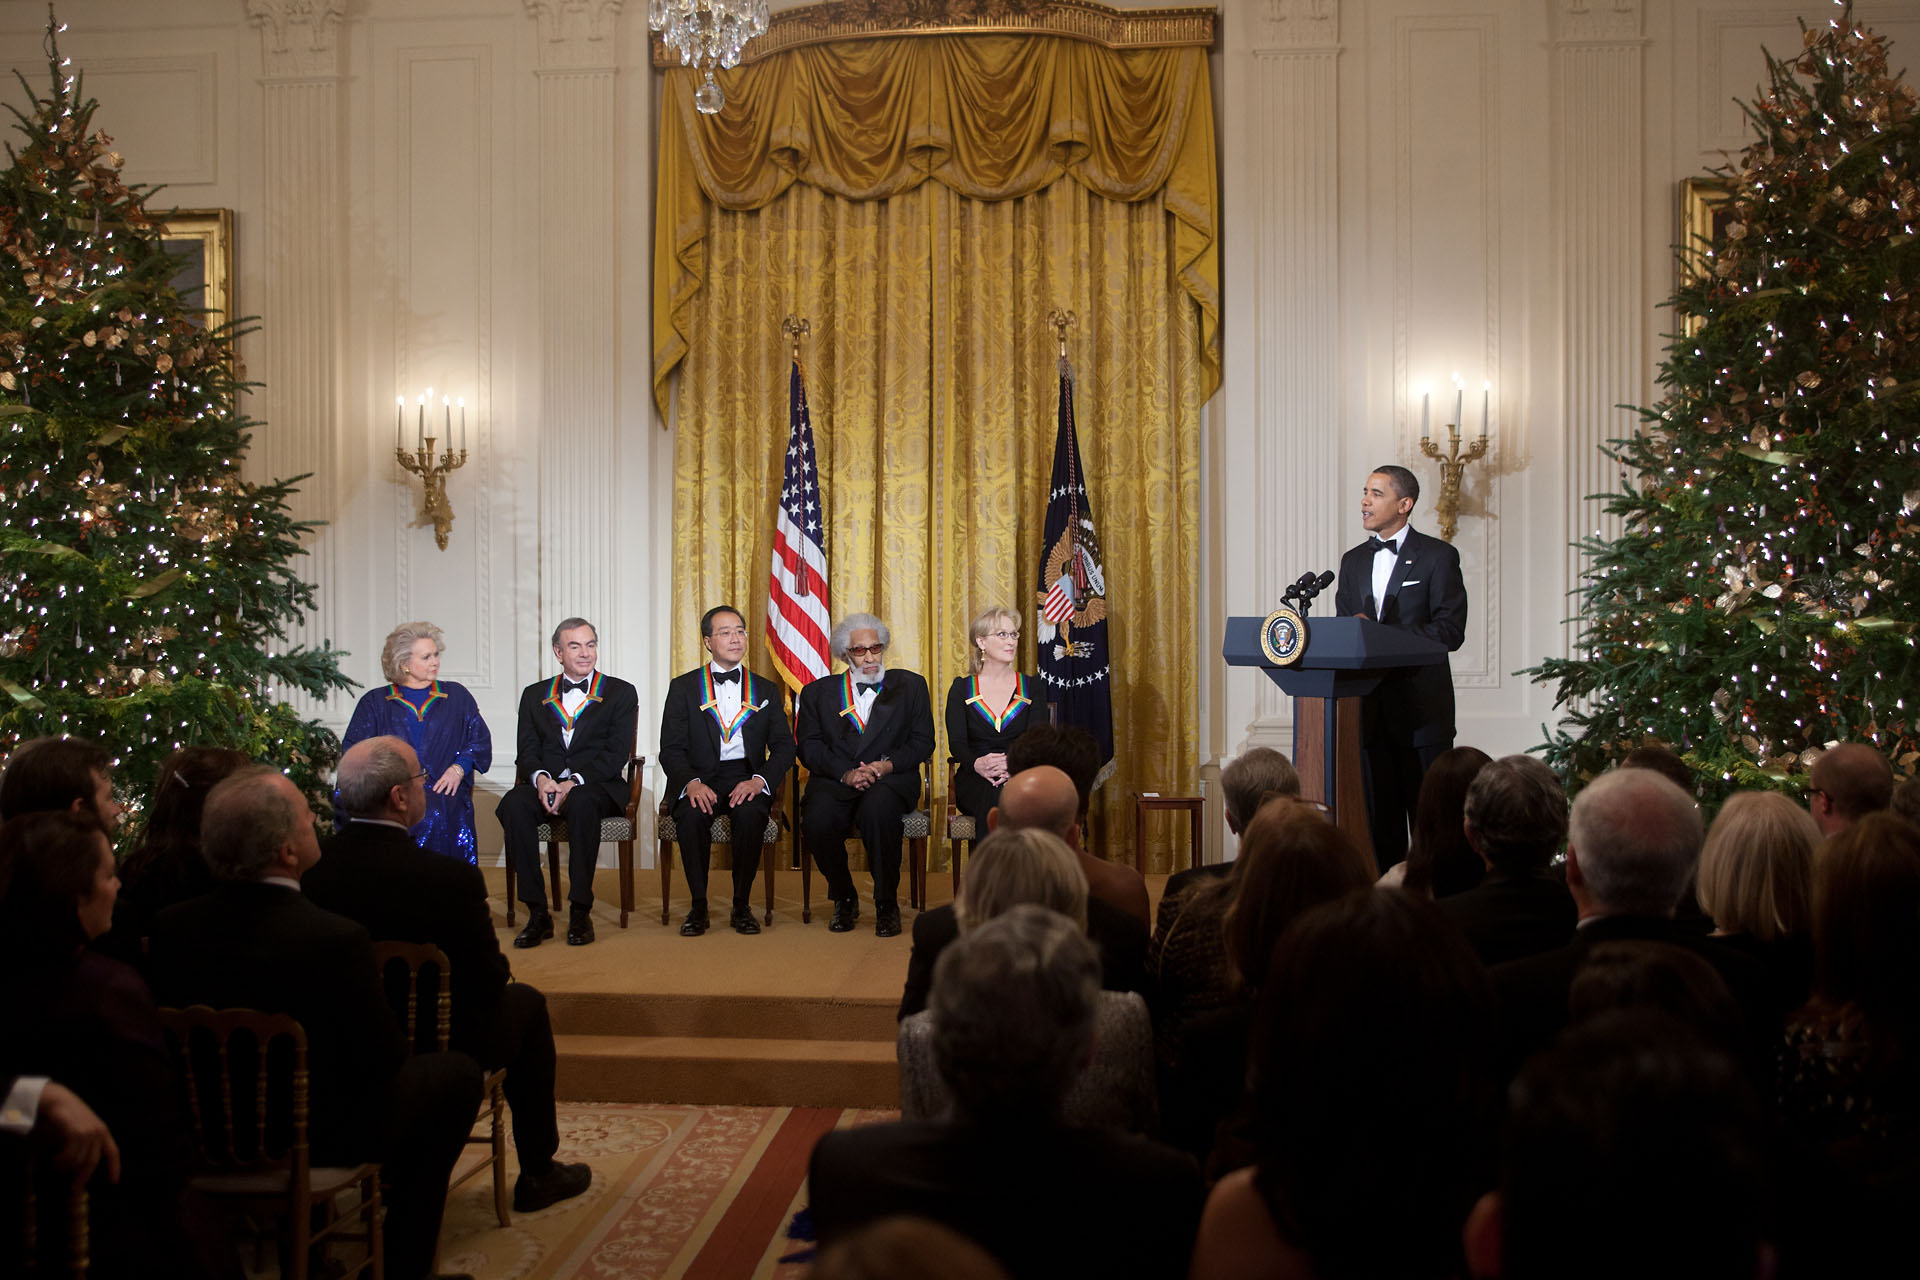 President Barack Obama delivers remarks during the 2011 Kennedy Center Honors reception